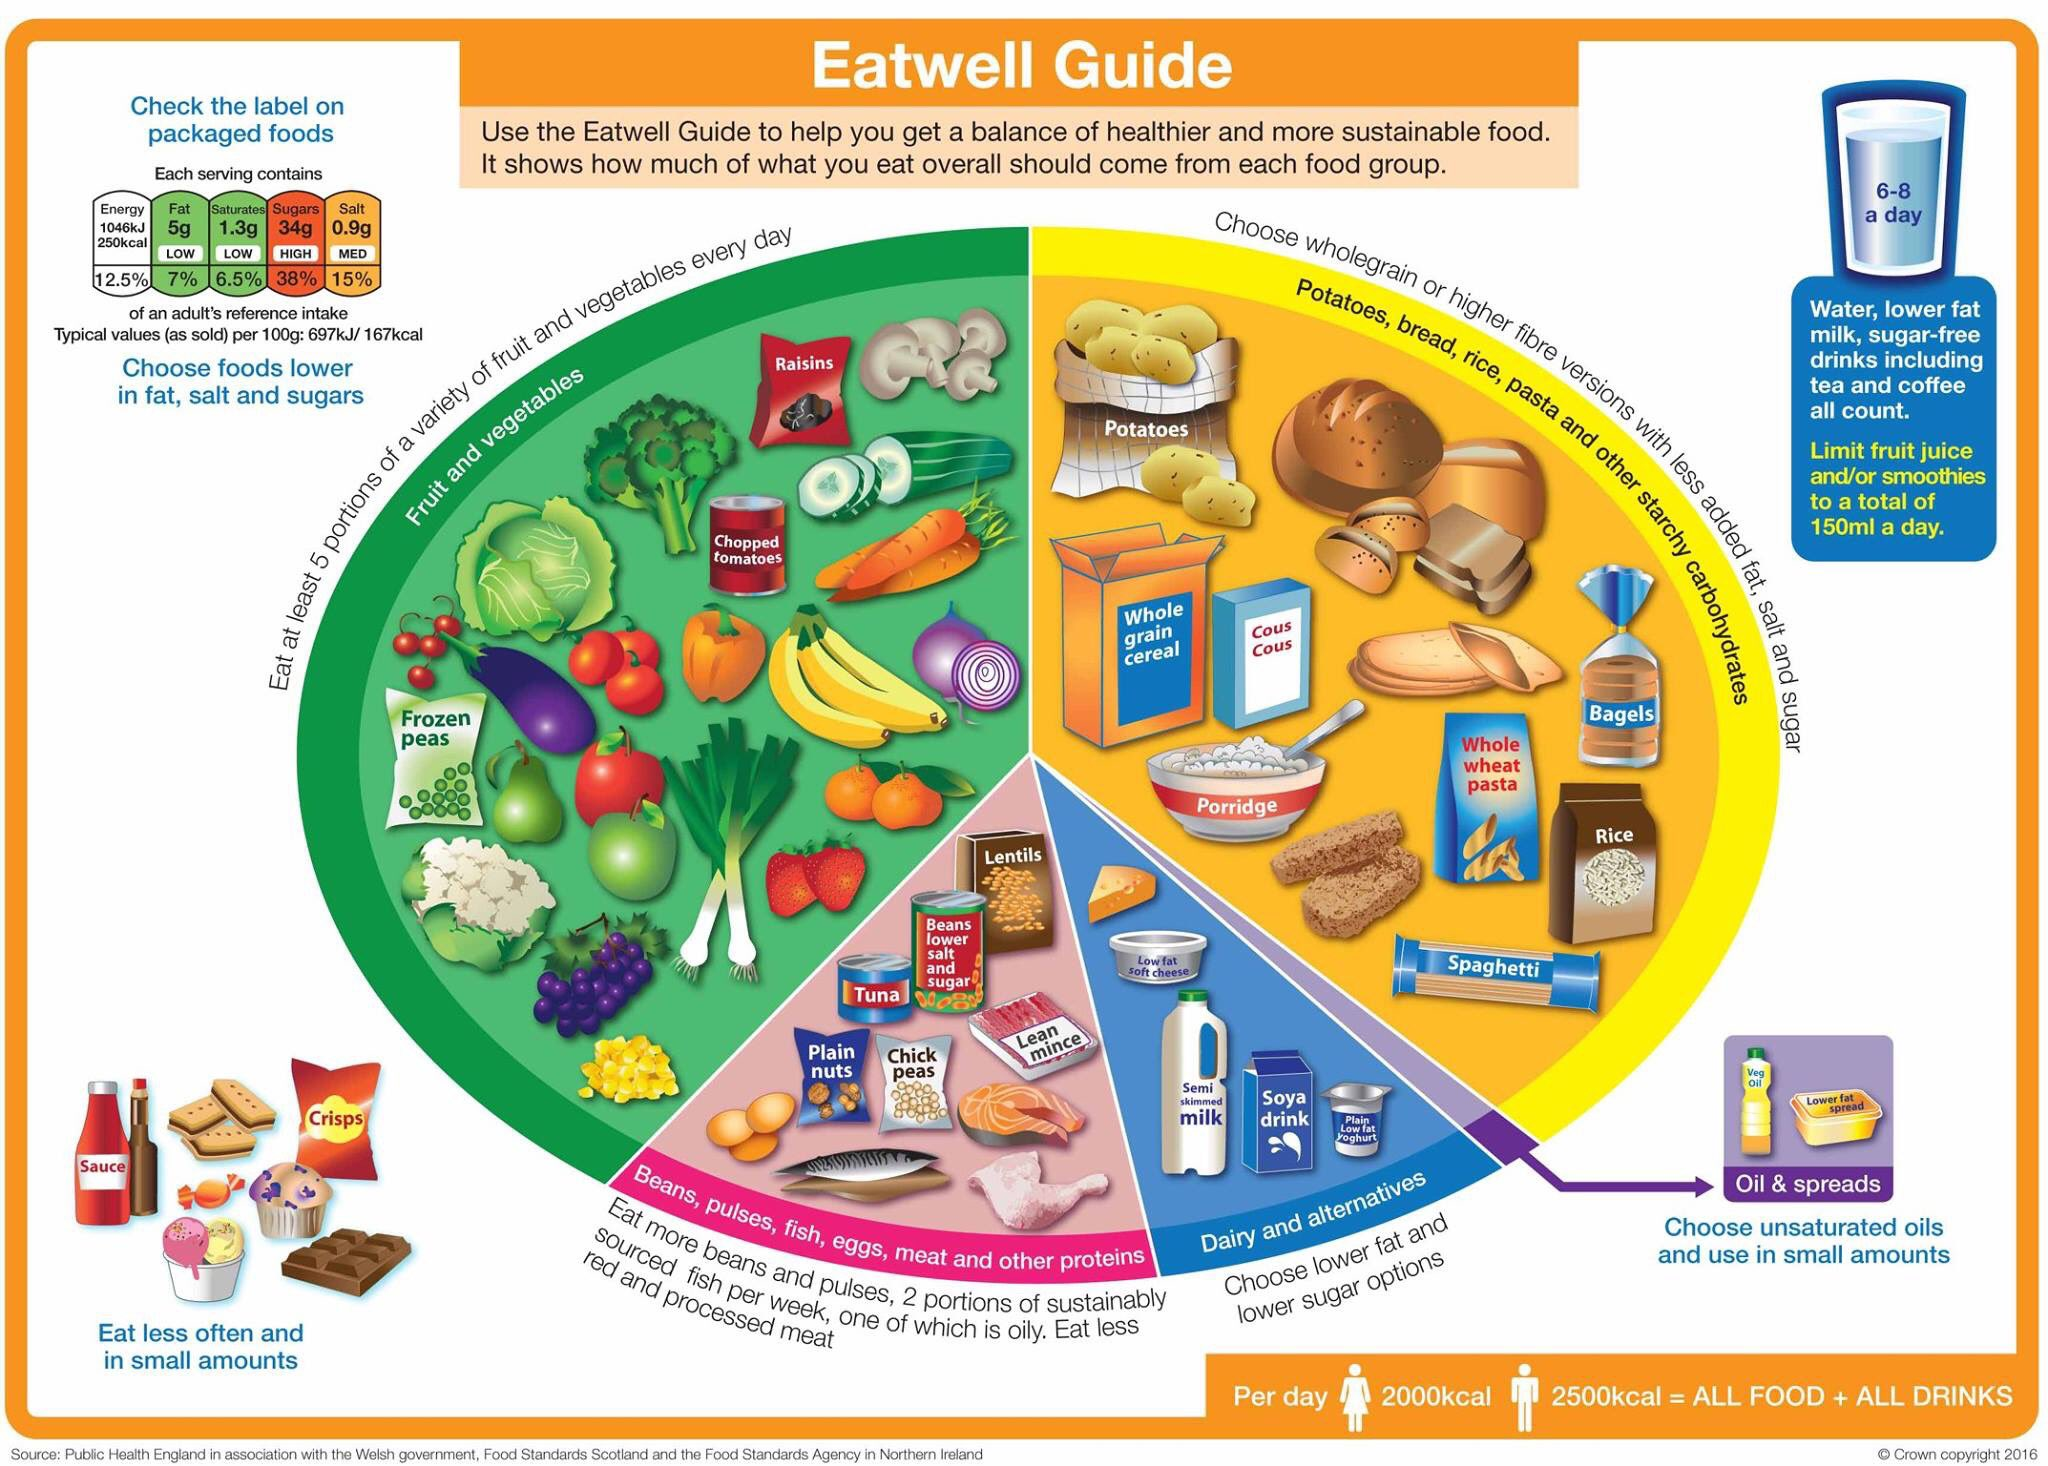 @simondankel @gfj1979 @KevinH_PhD Would it be a sensible step to immediately remove ultra-processed food products from eatwell guides of all sorts endorsed by governments, eg. EatWell Guide in the UK?  Or is there any nutritional reason to push them to the public? https://t.co/6TiNekkItF